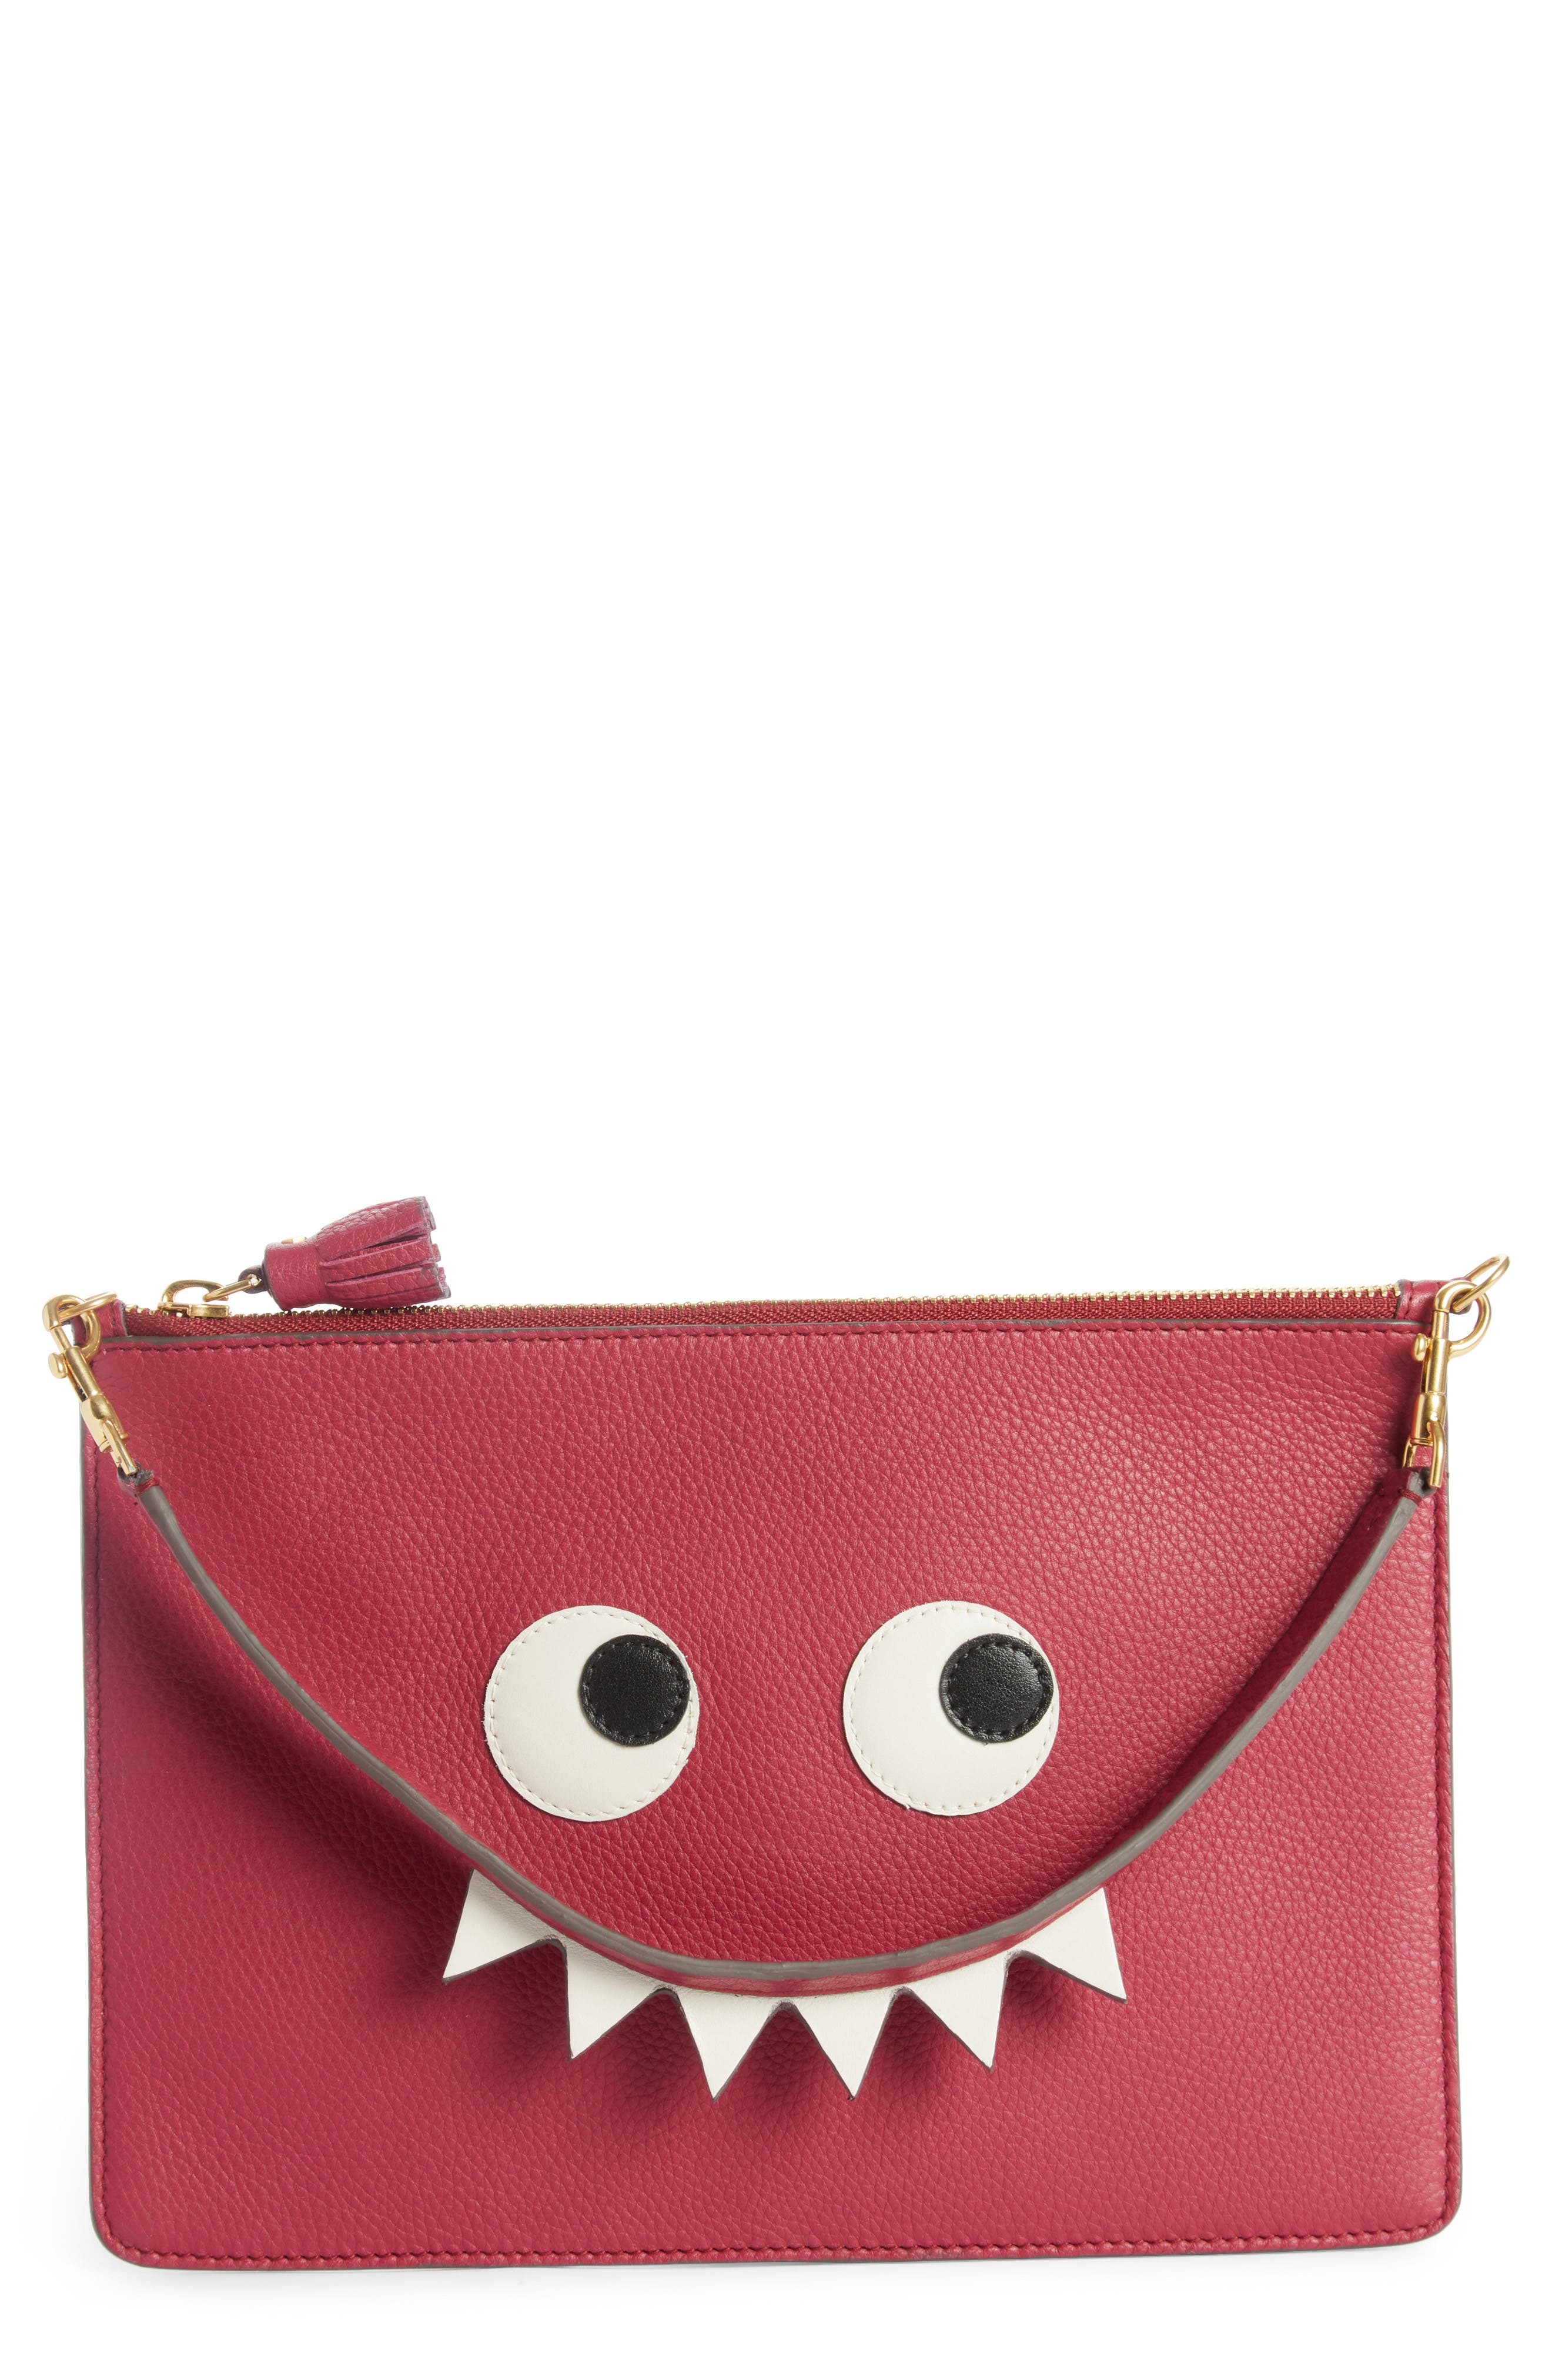 Eyes Leather Zip Pouch,                             Main thumbnail 1, color,                             Raspberry